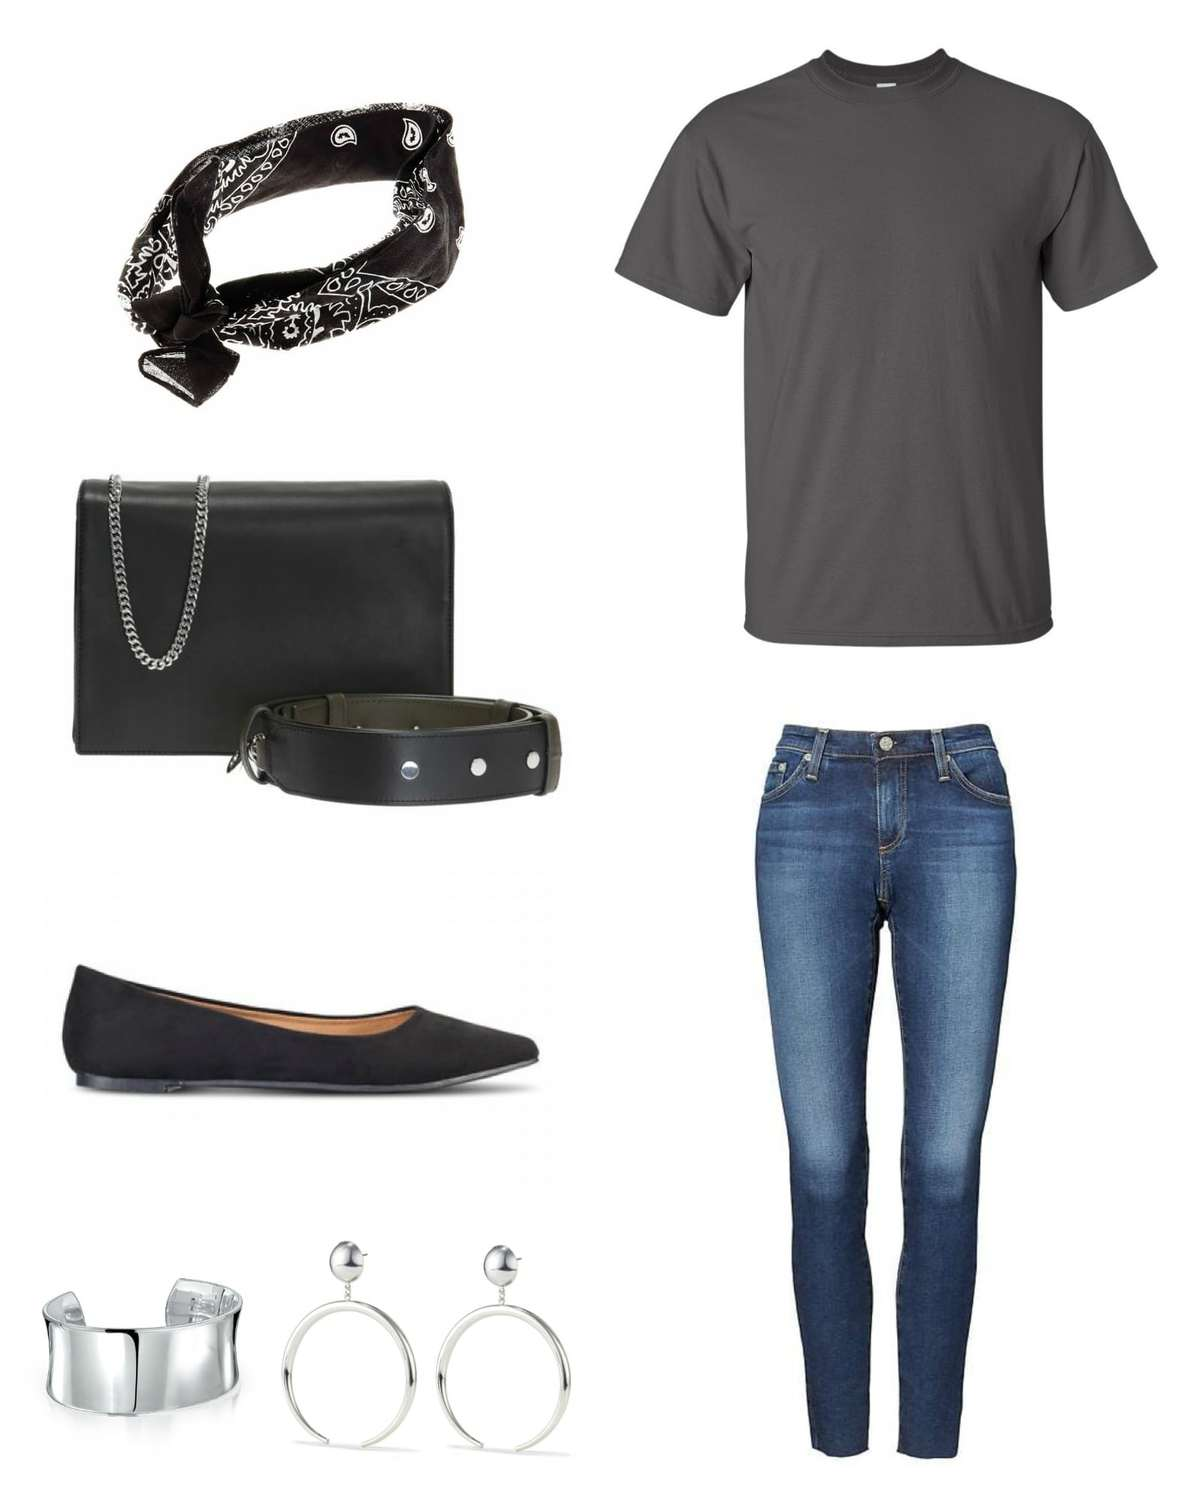 Image is of Banana Republic ankle jeans with the Universal Standard T Rex shirt in gray styled with a black bandana, black Zep handbag from ALLSAINTS, black Rothy's The Point flats, a silver cuff bracelet and silver statement earrings.